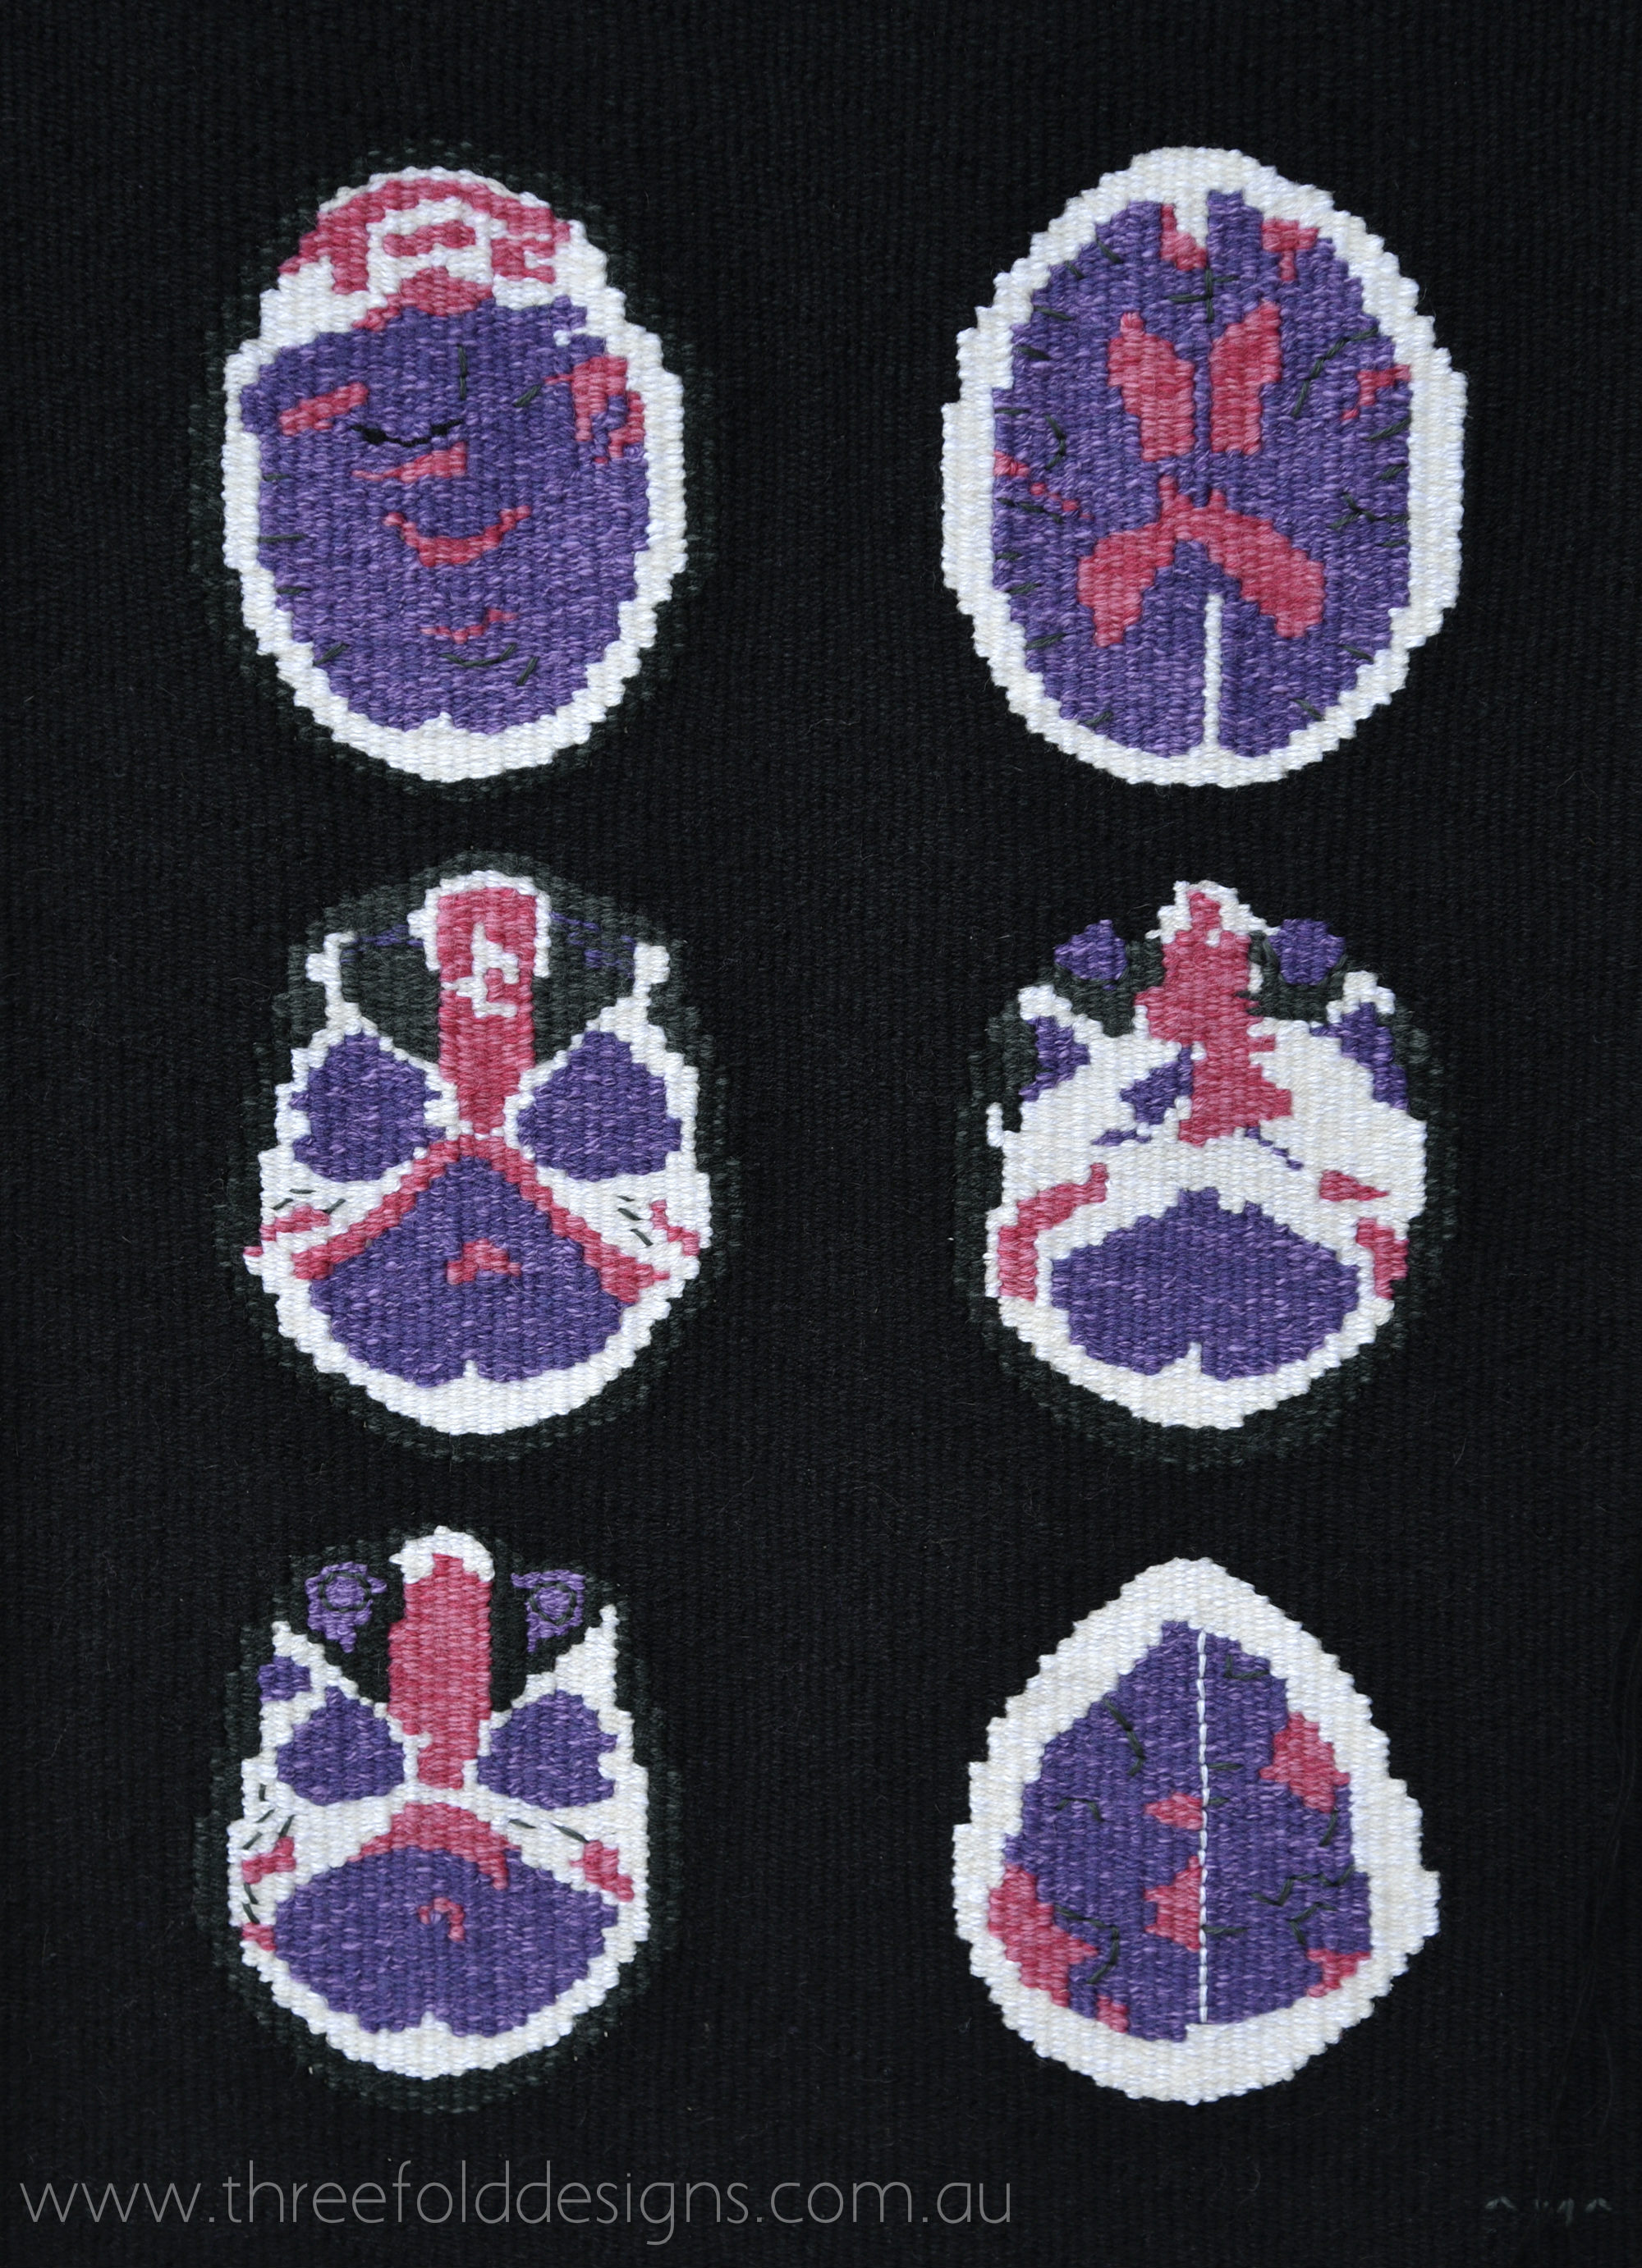 WindowsNo5PortraitOfDementia_wm.jpg